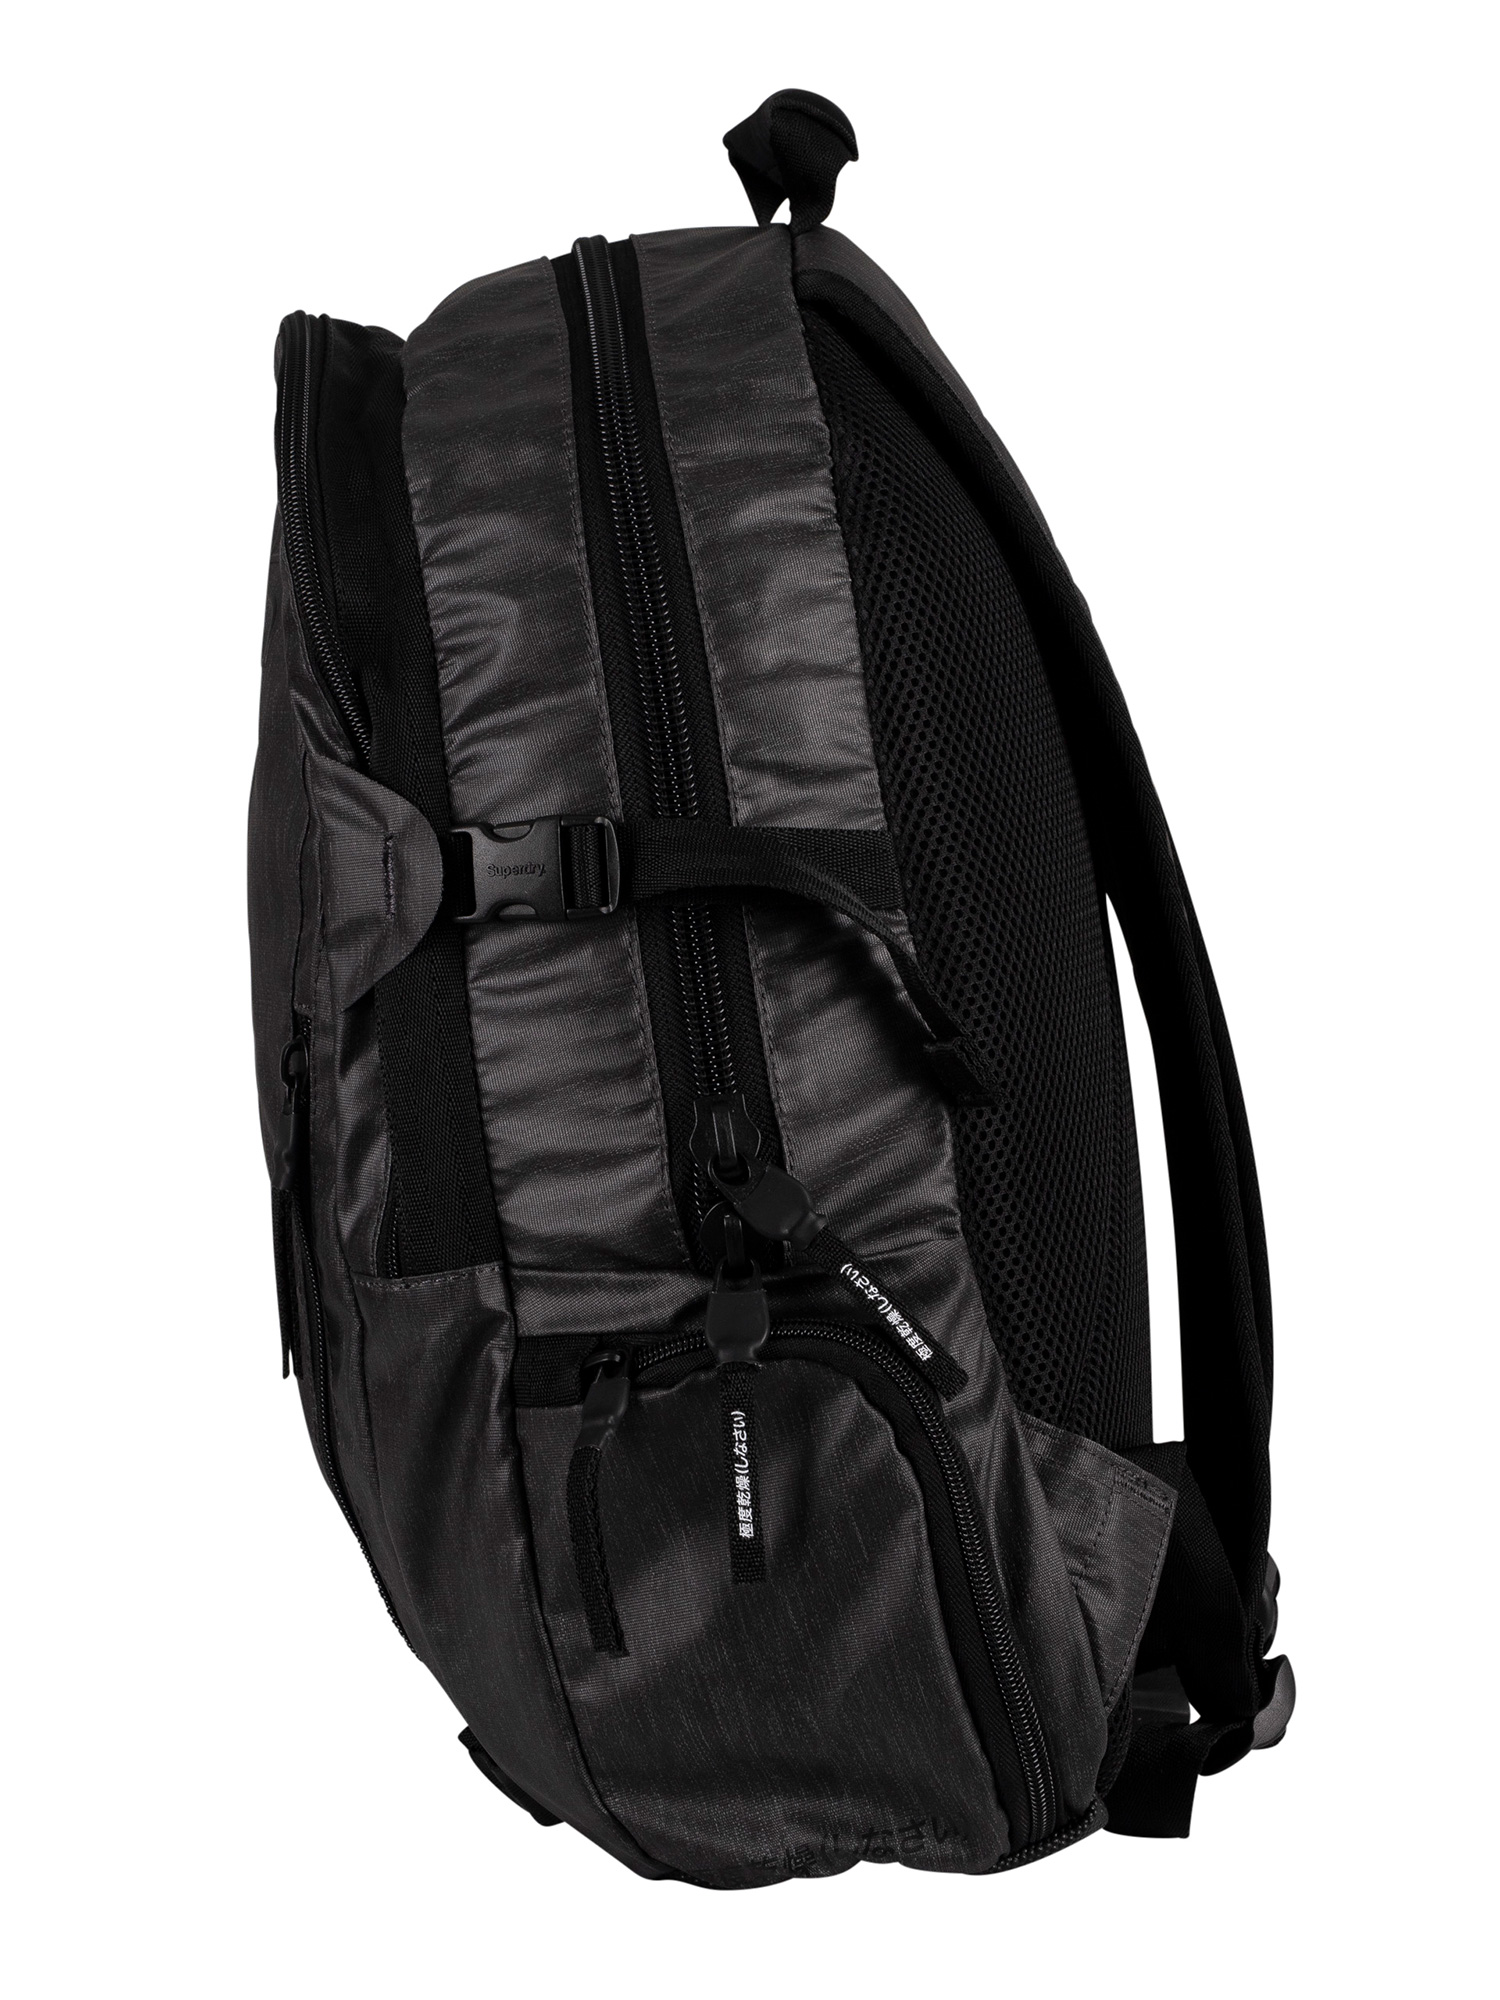 Superdry Tarp Backpack - Black